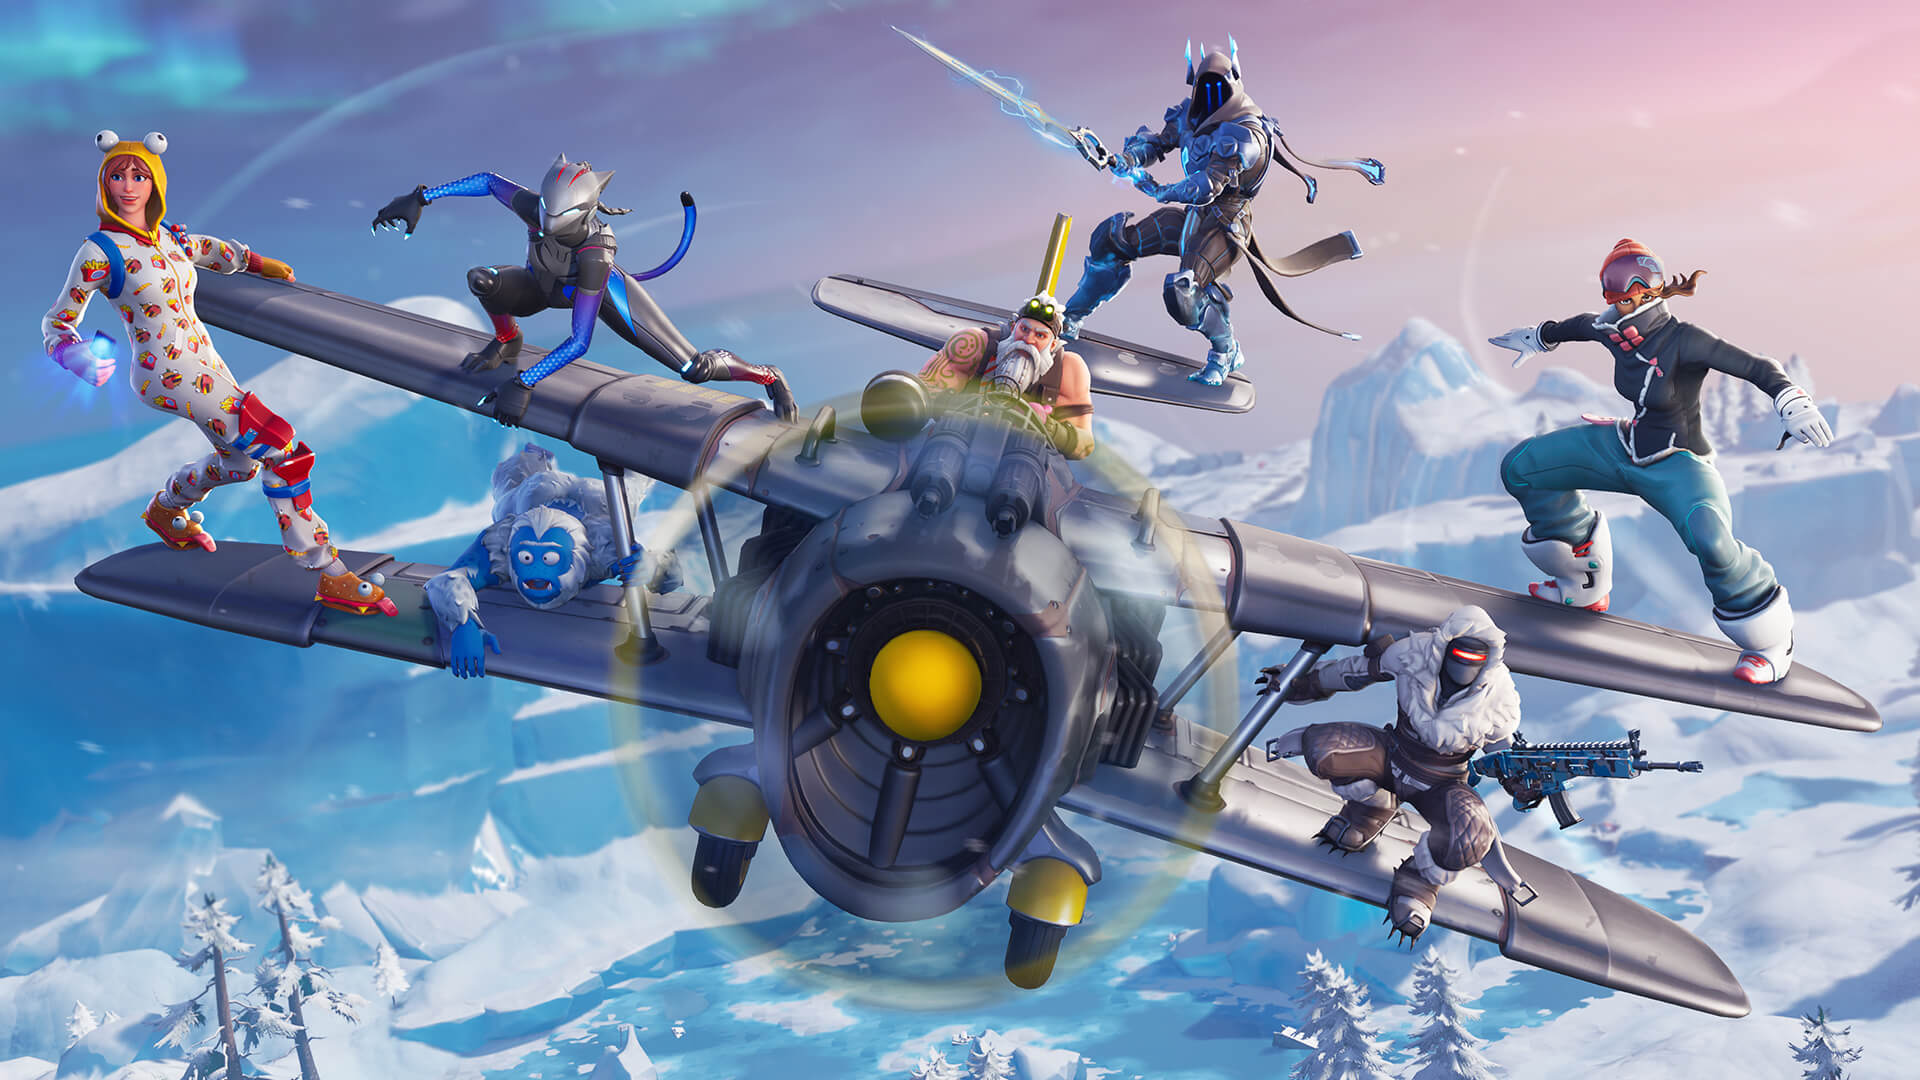 Fortnite_patch-notes_v7-00_header-v7-00_PATCH-BR07_News_Featured_16_9-1920x1080-cffcaf5bb2ed63854673855b592e167e7e817360